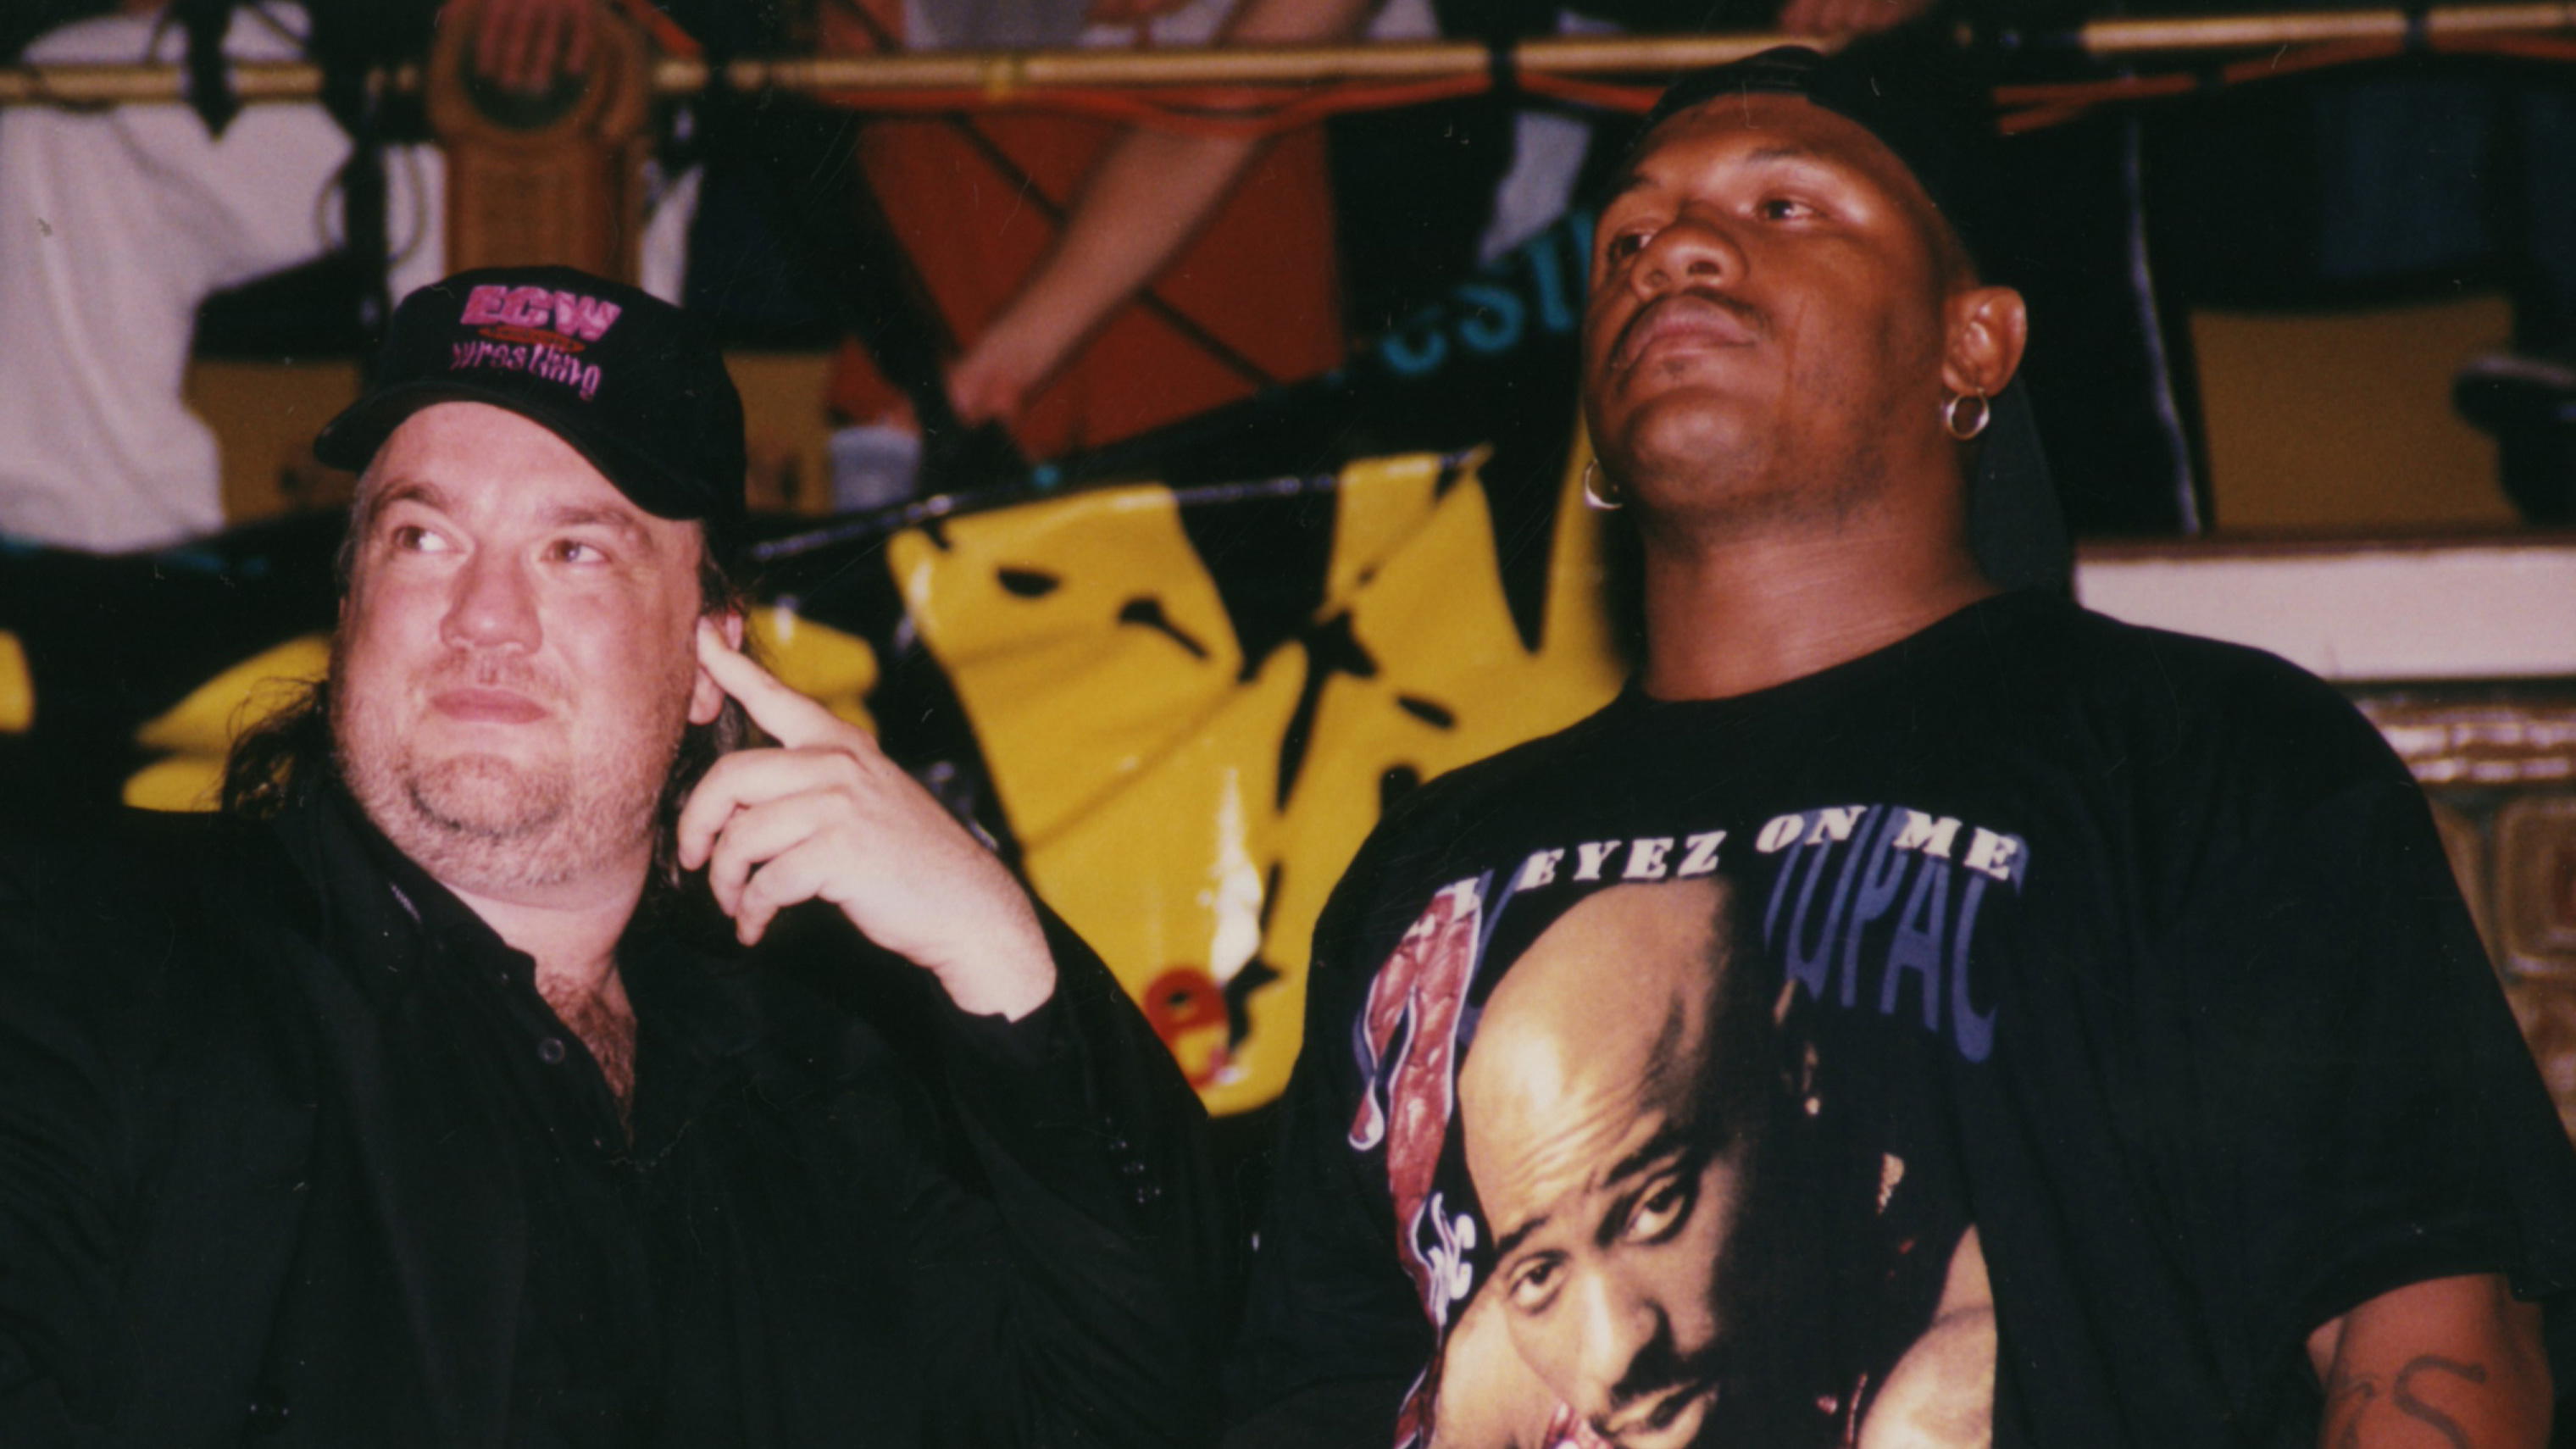 Heyman with New Jack in ECW.